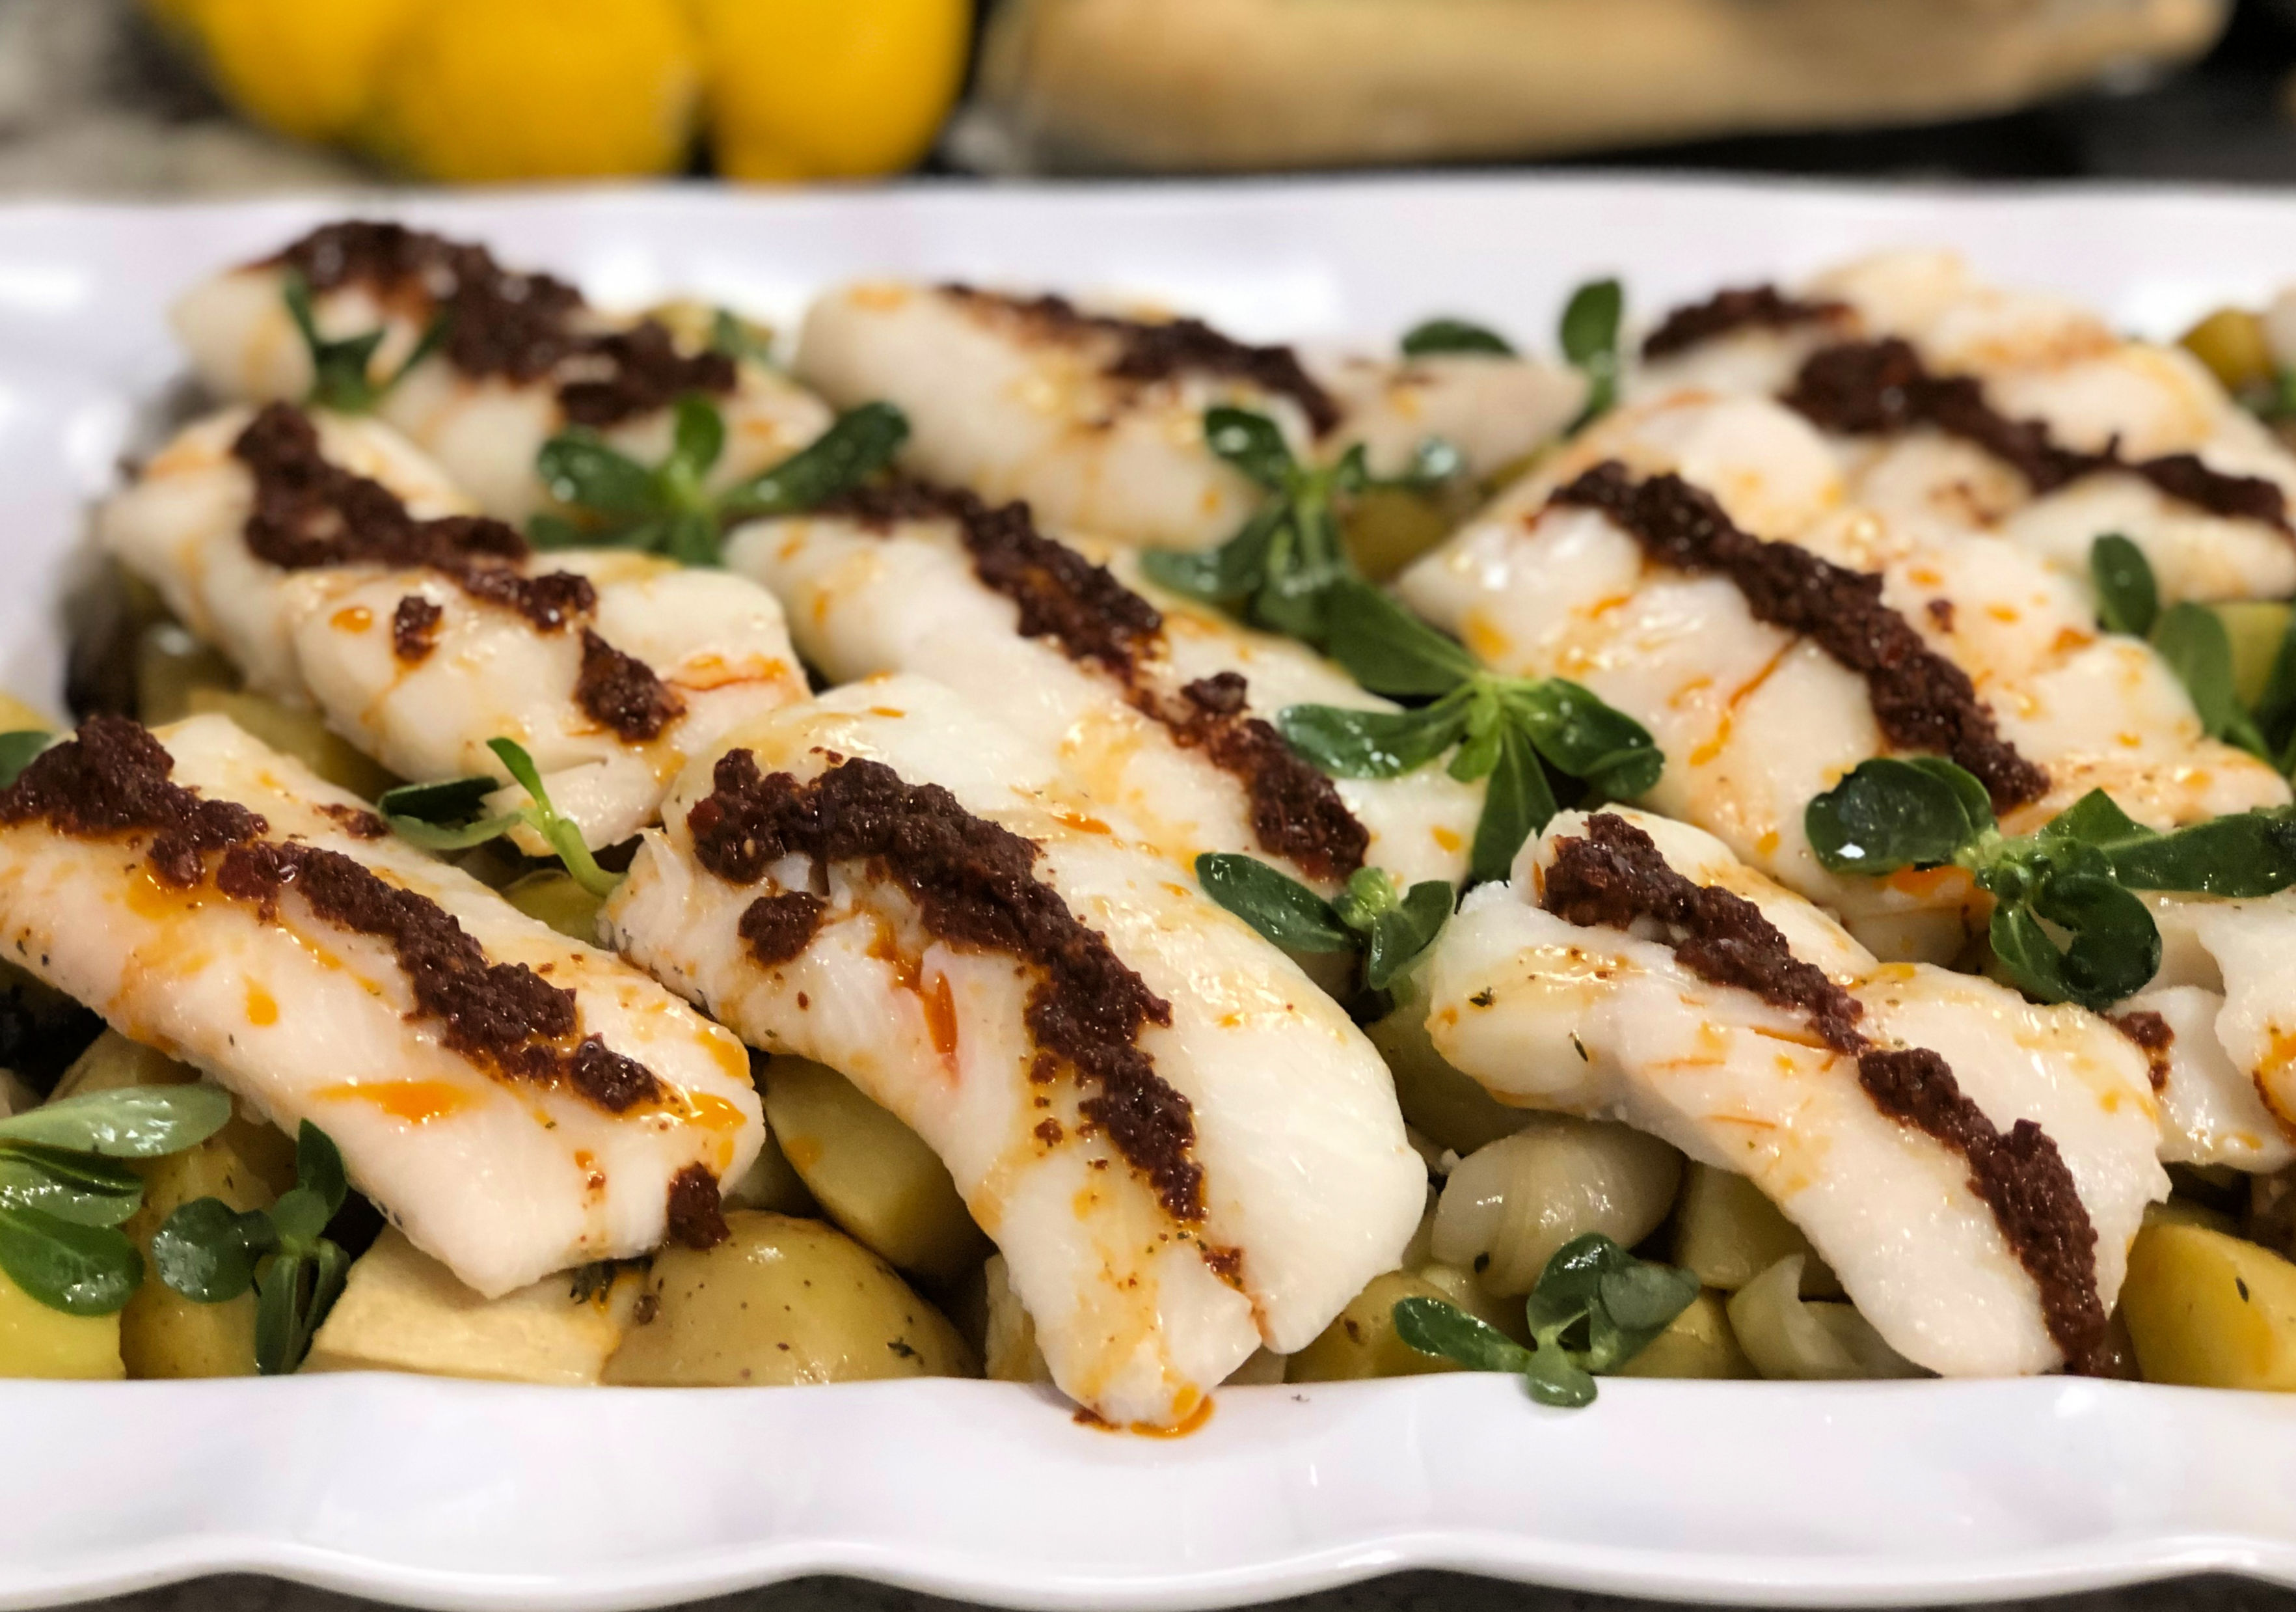 Norwegian Haddock with Harissa vinaigrette